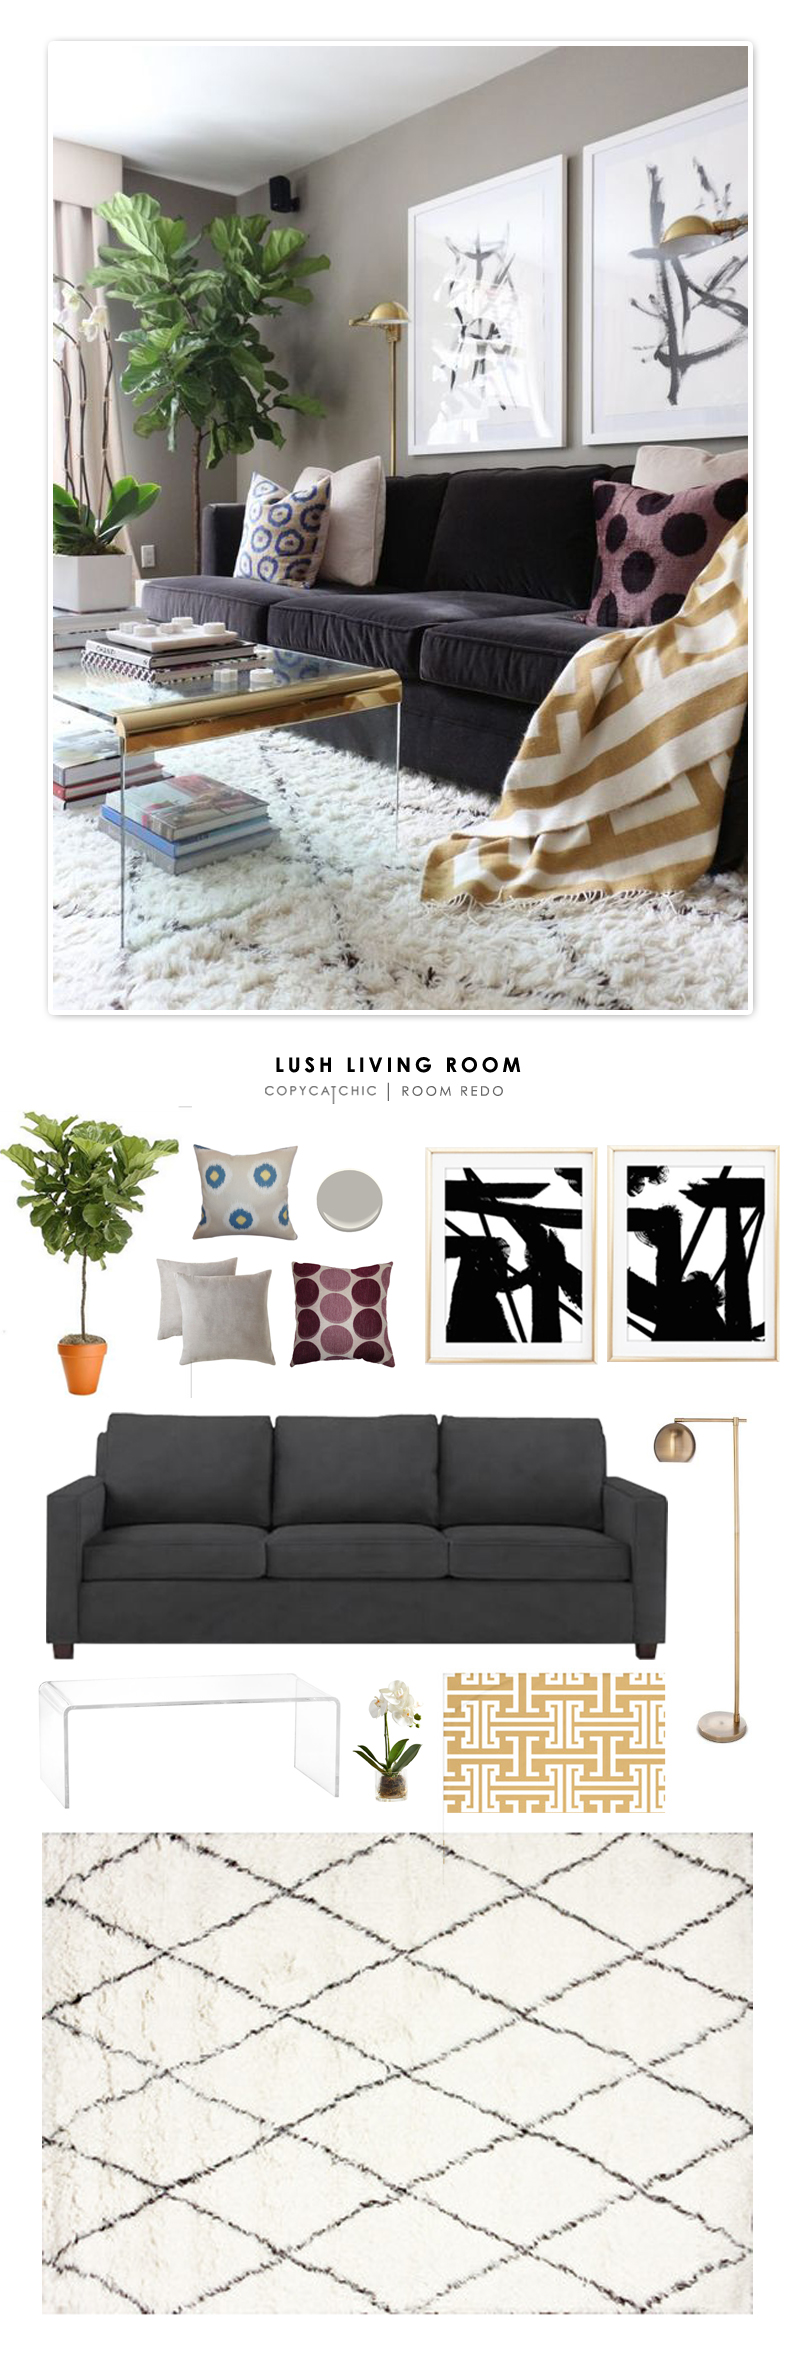 A lush living room designed by Victoria Solomon and recreated for less by Copy Cat Chic